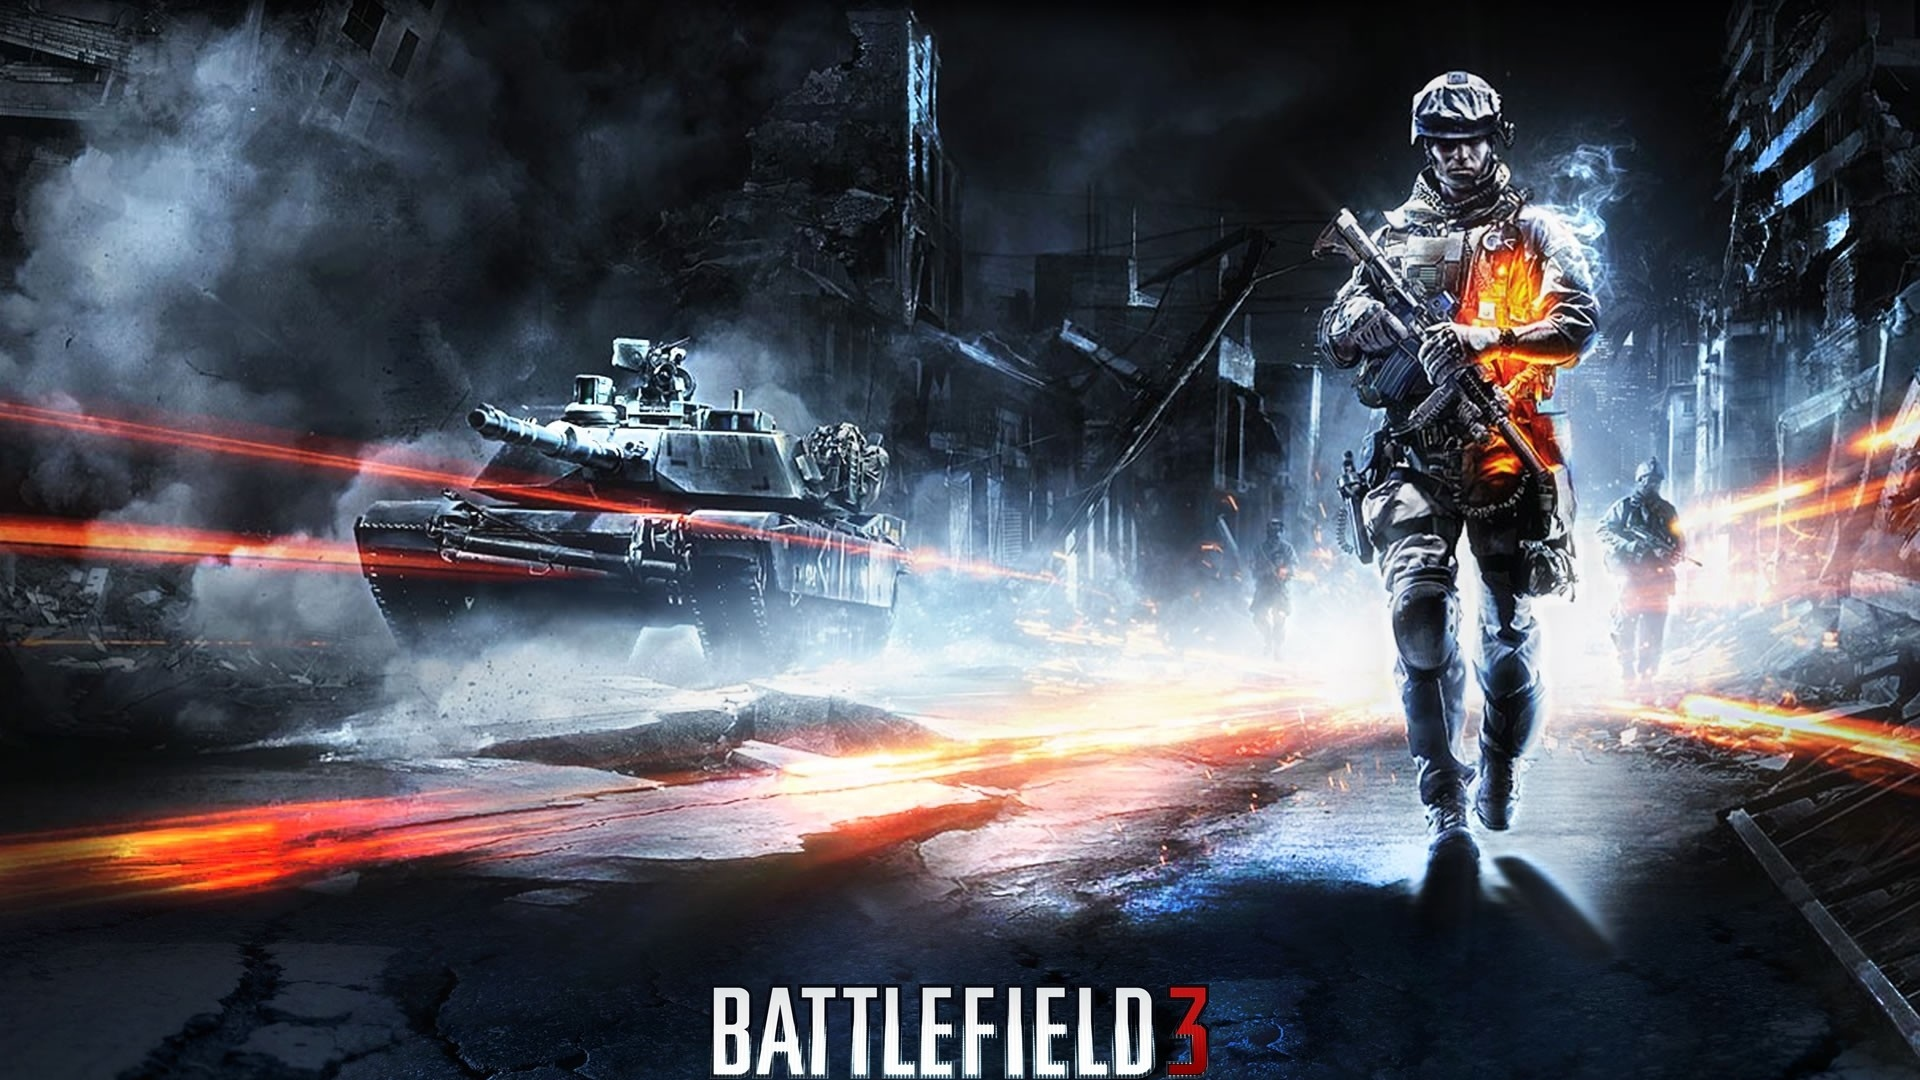 Download wallpaper 1920x1080 battlefield 3 tank city road full battlefield 3 tank city voltagebd Images